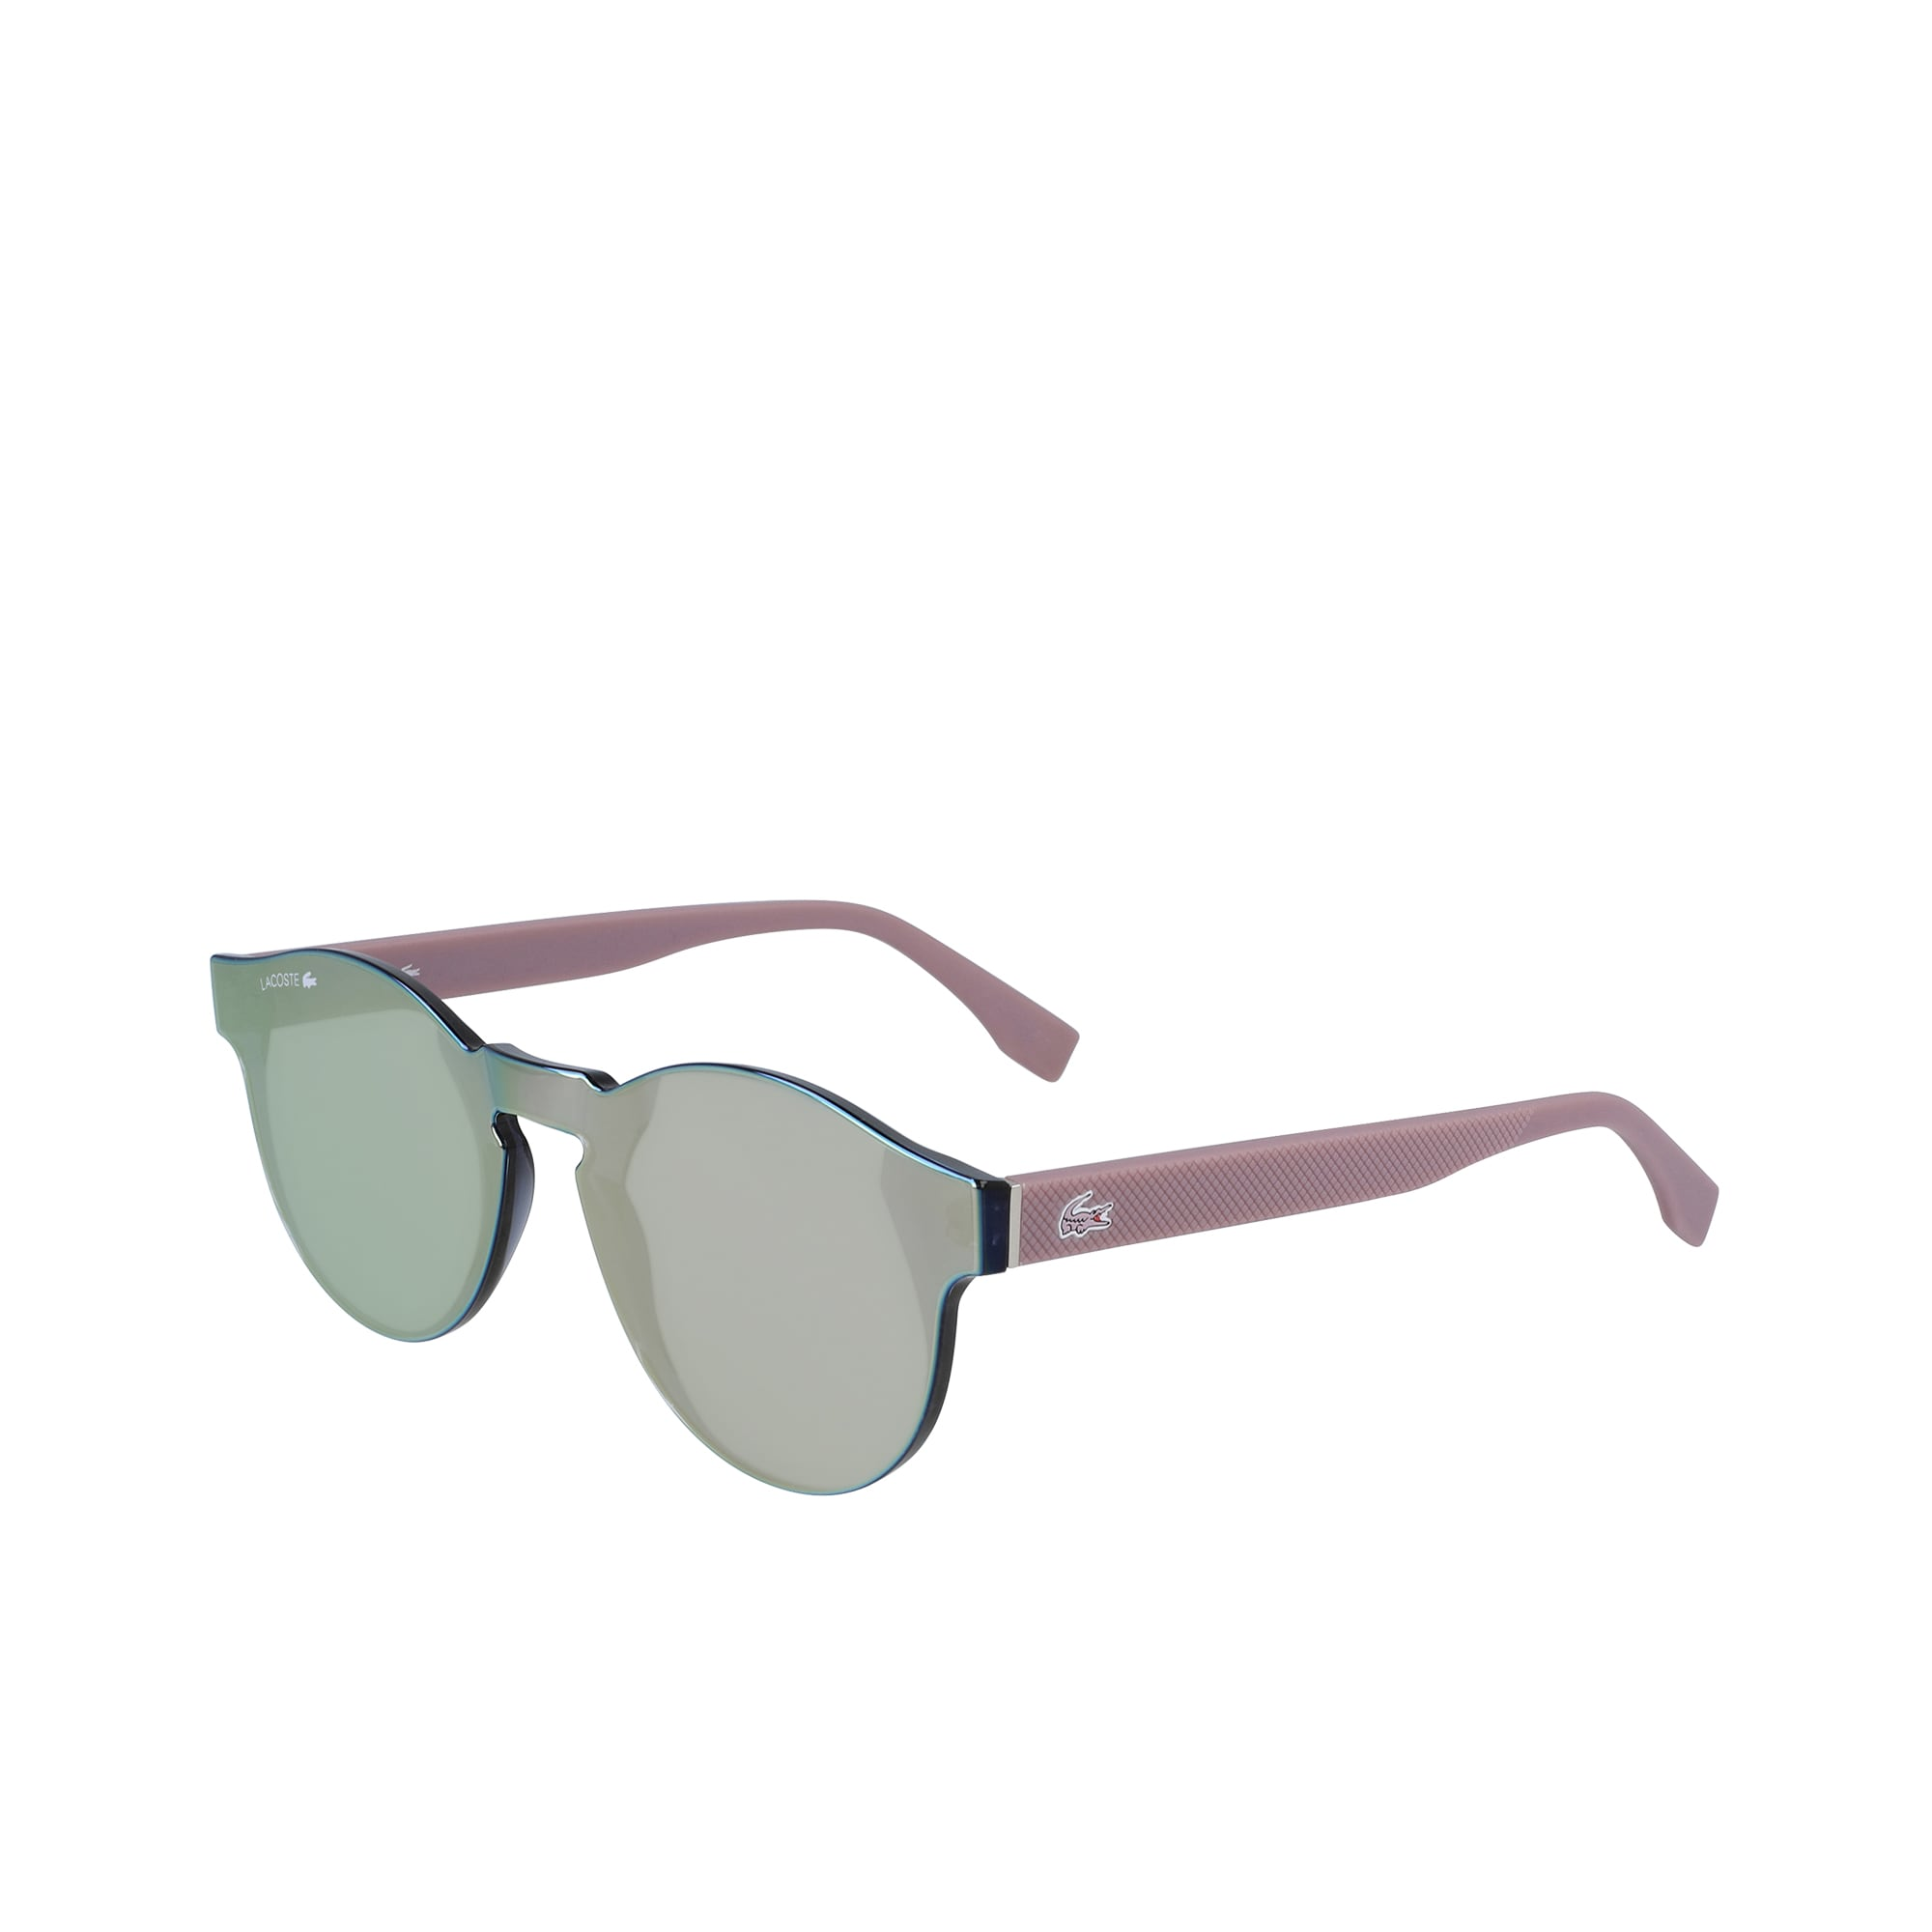 7d3eaef4f04 Men s Sunglasses